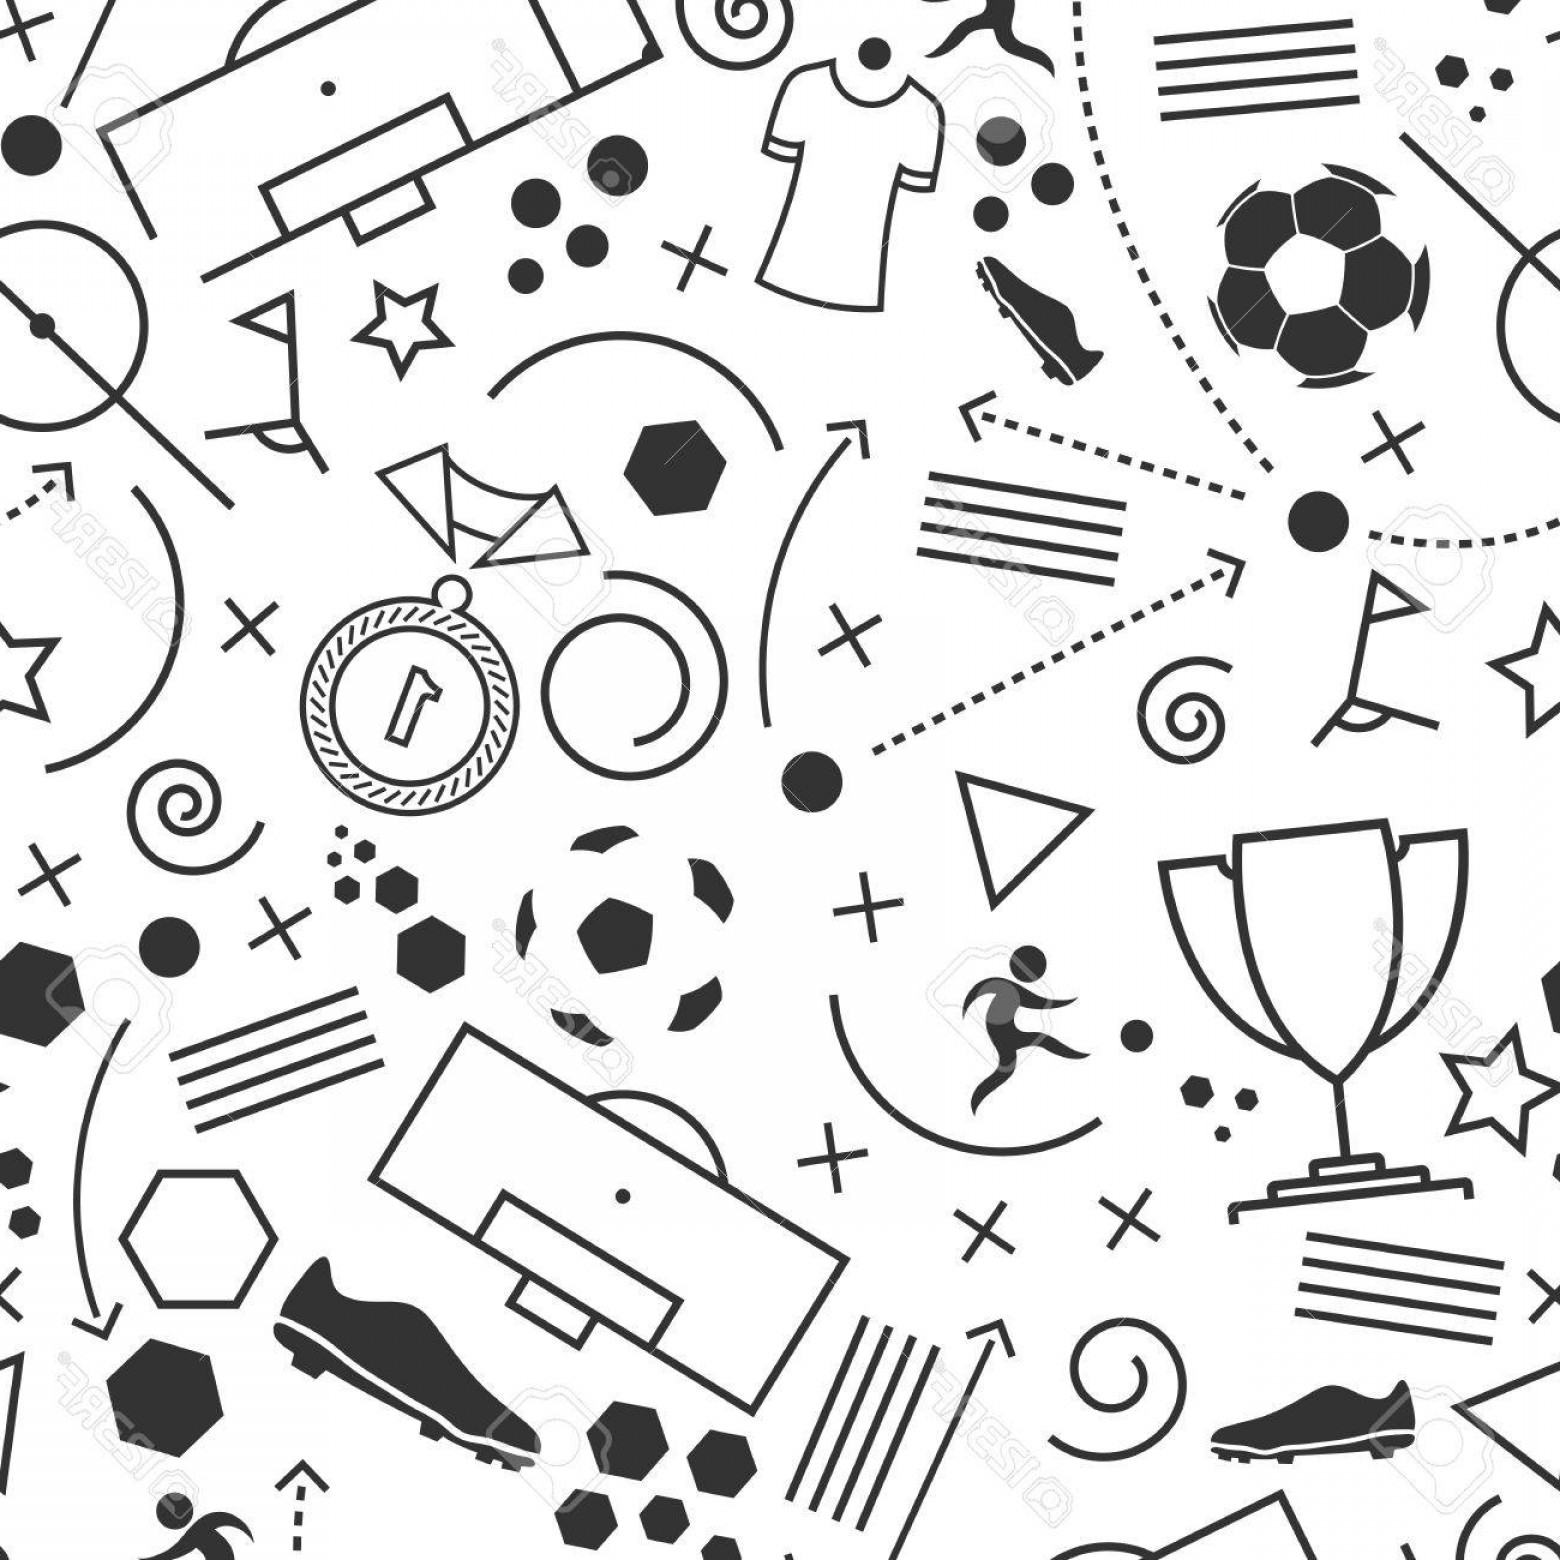 Abstract Football Vector Outline: Photostock Vector Football Icons Set Vector Illustration Of Abstract Seamless Soccer Wallpaper Pattern For Your Design